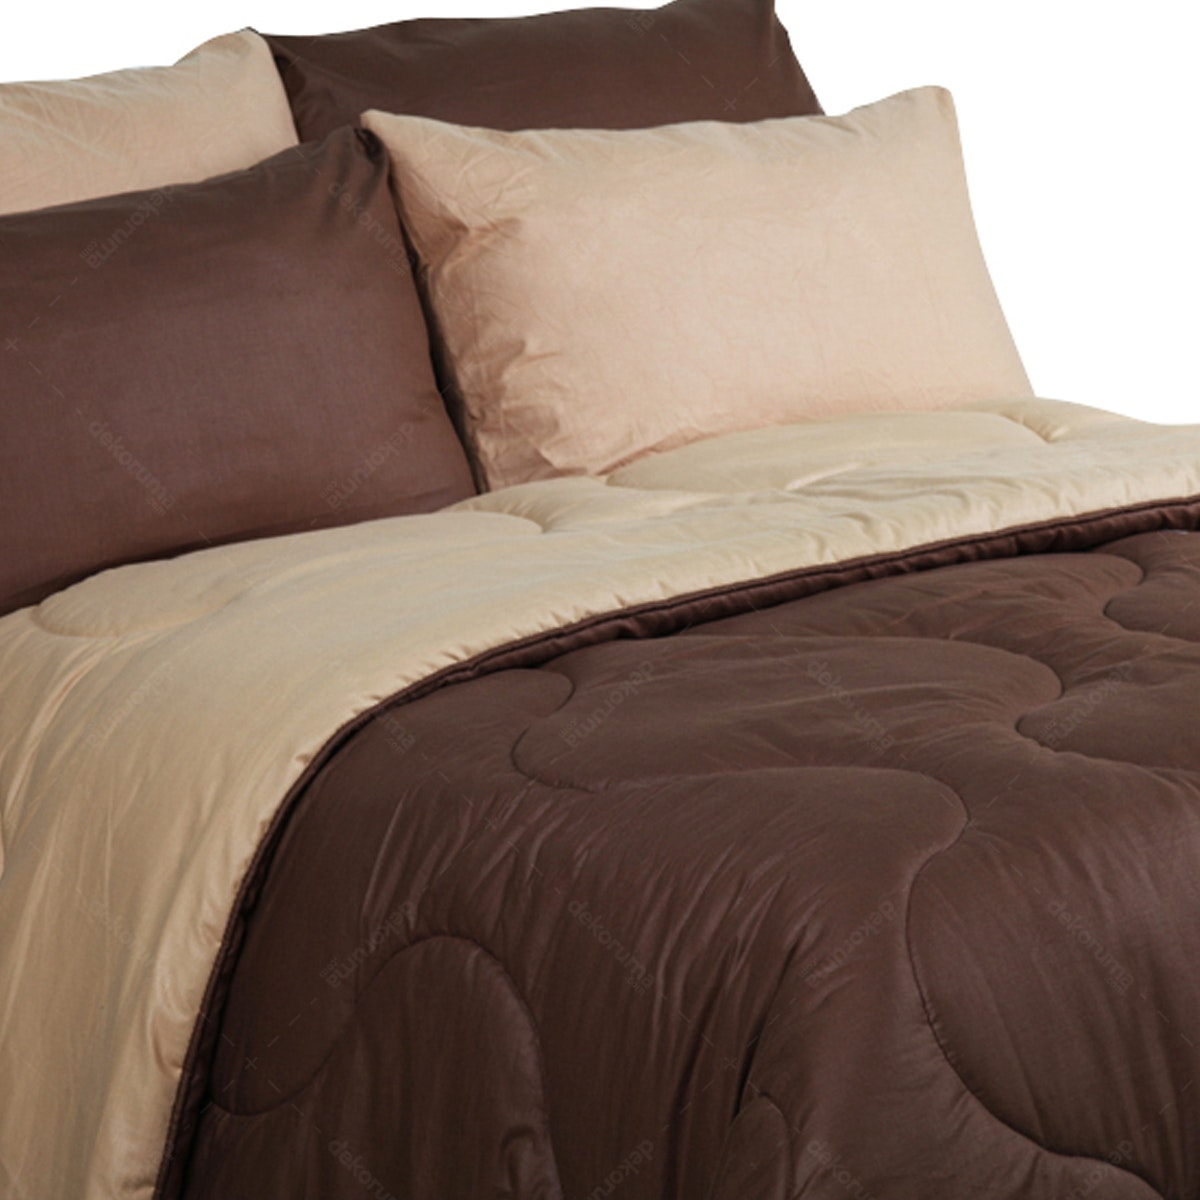 Sierra Bed Cover Dan Sprei Polos Coffee Mix Mocca 160x200